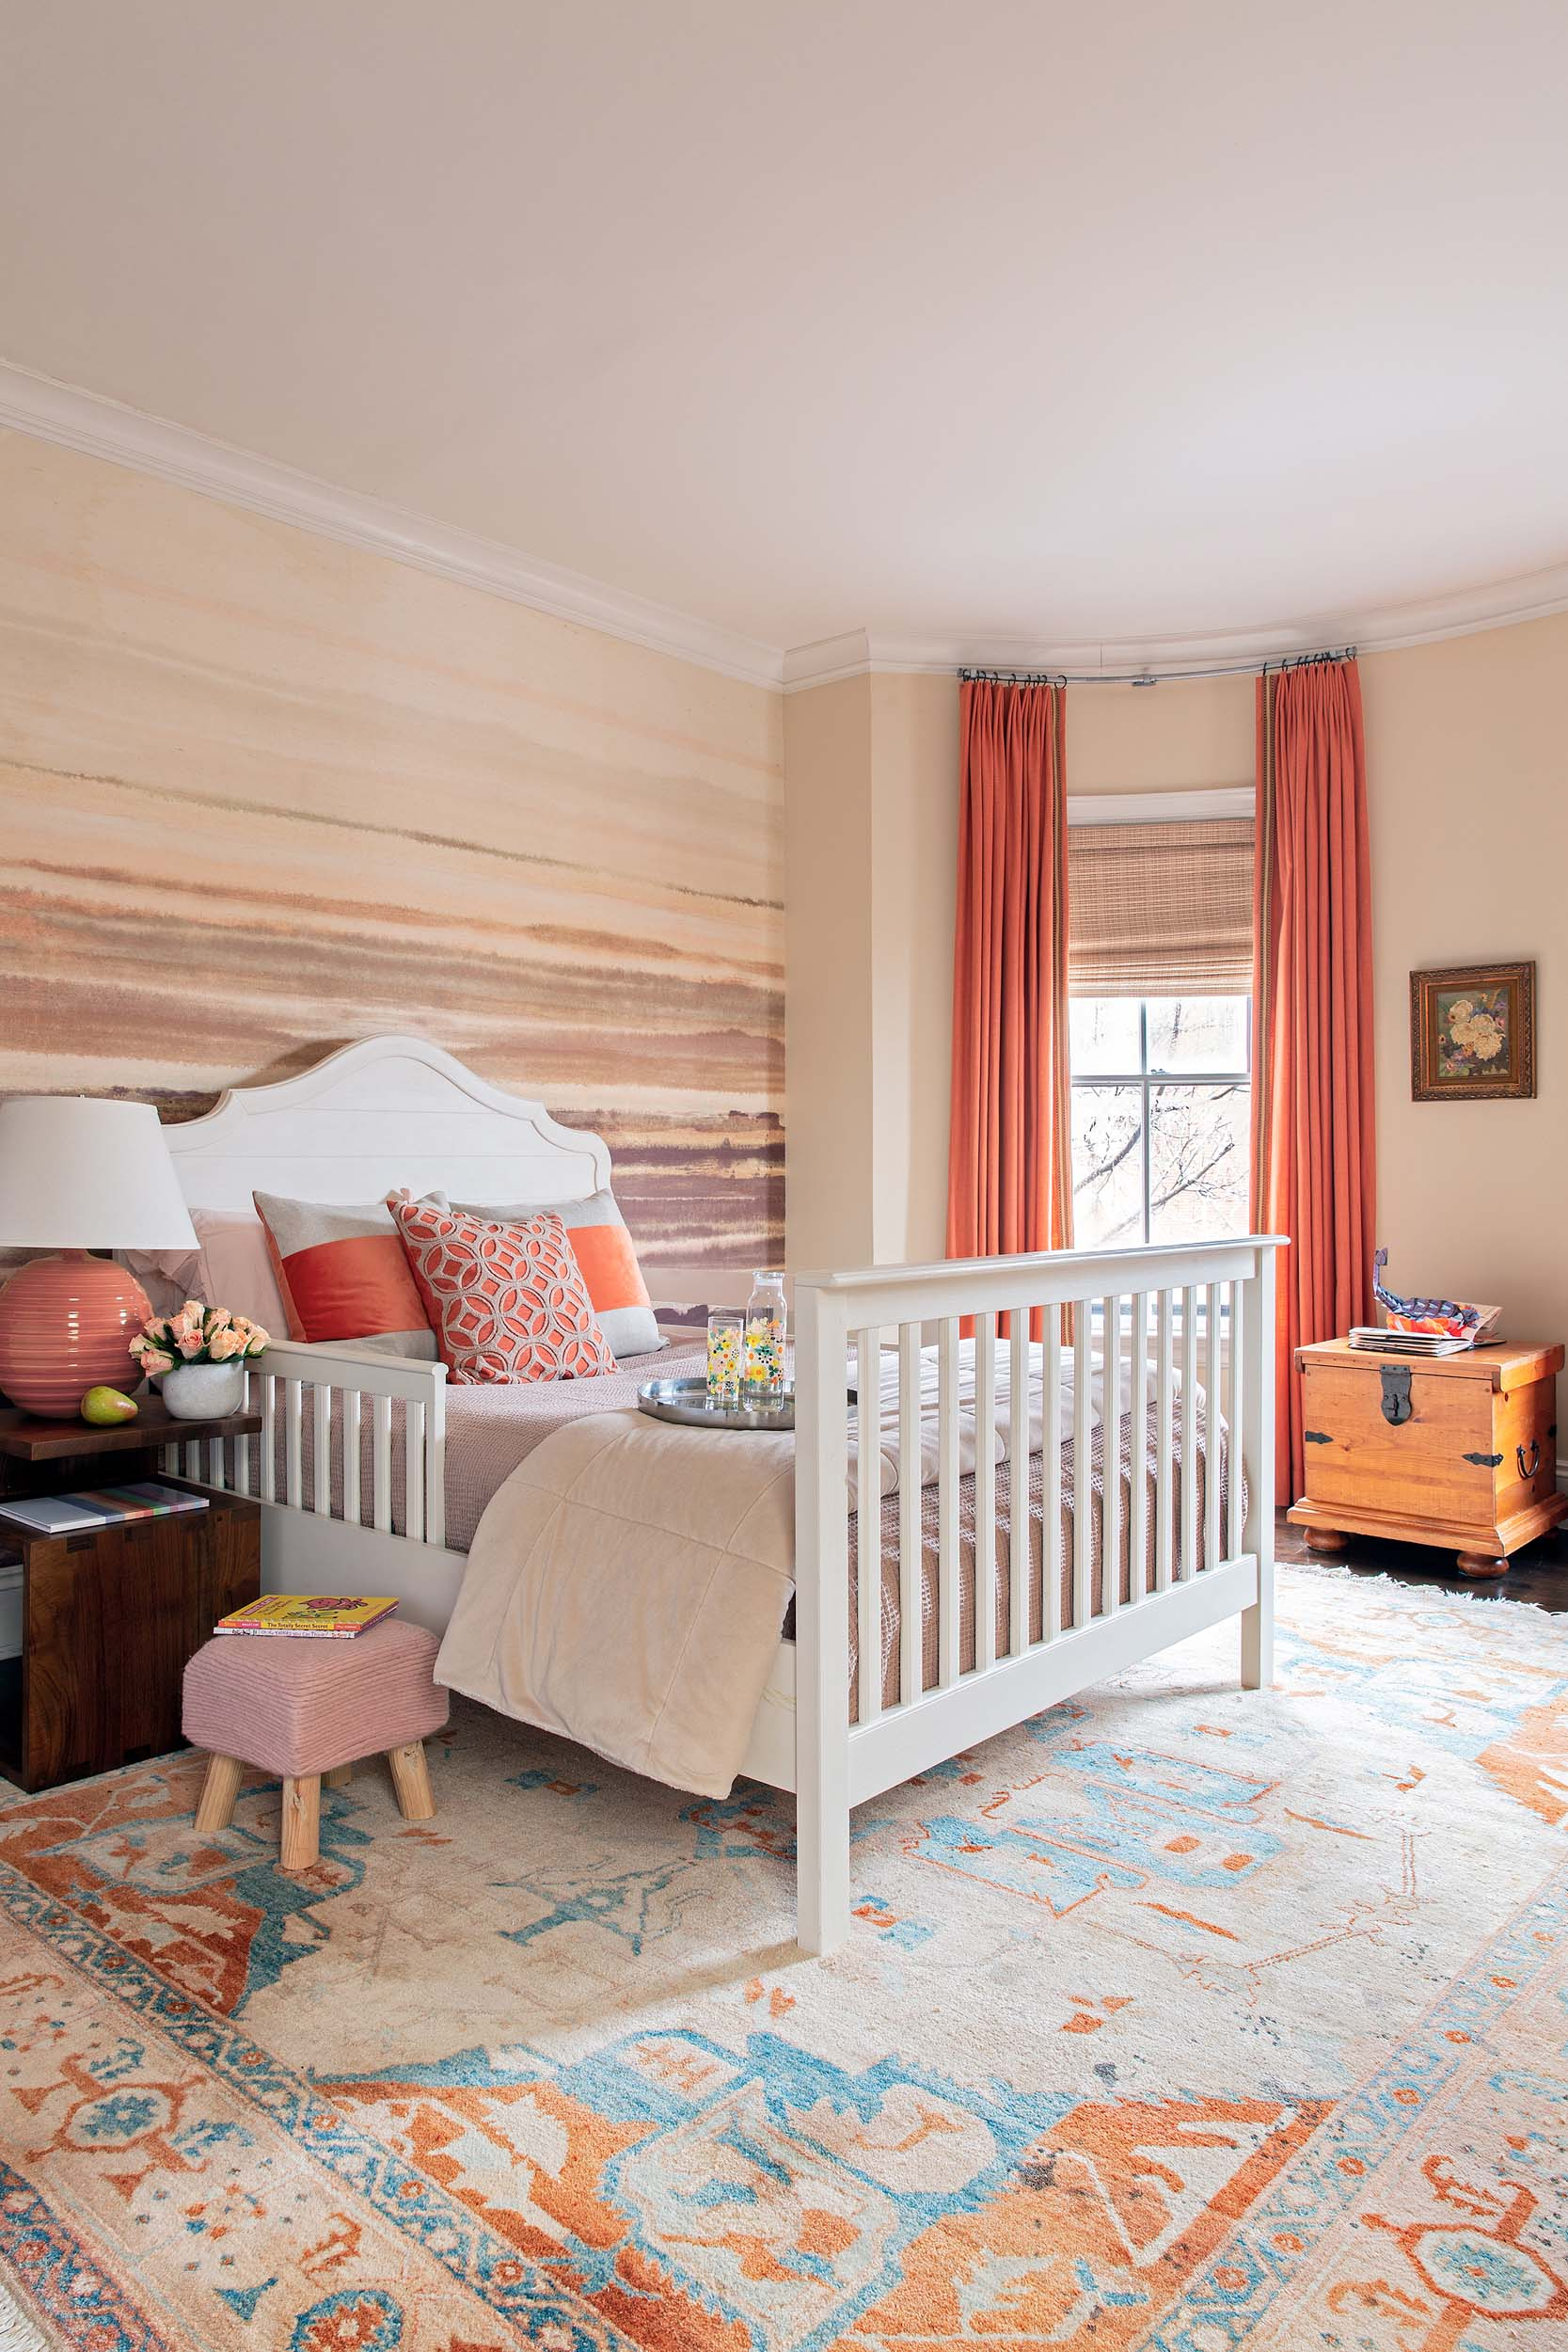 13-Casual-Elegant-Transitional-Contemporary-Top-girls-guest-bedroom-Phillip-Jeffries-wallpaper-ideas-Decorator-Best-Interior-Designers-Boston-South-End-Back-Bay-Cambridge-Dane-Austin-Design.jpg